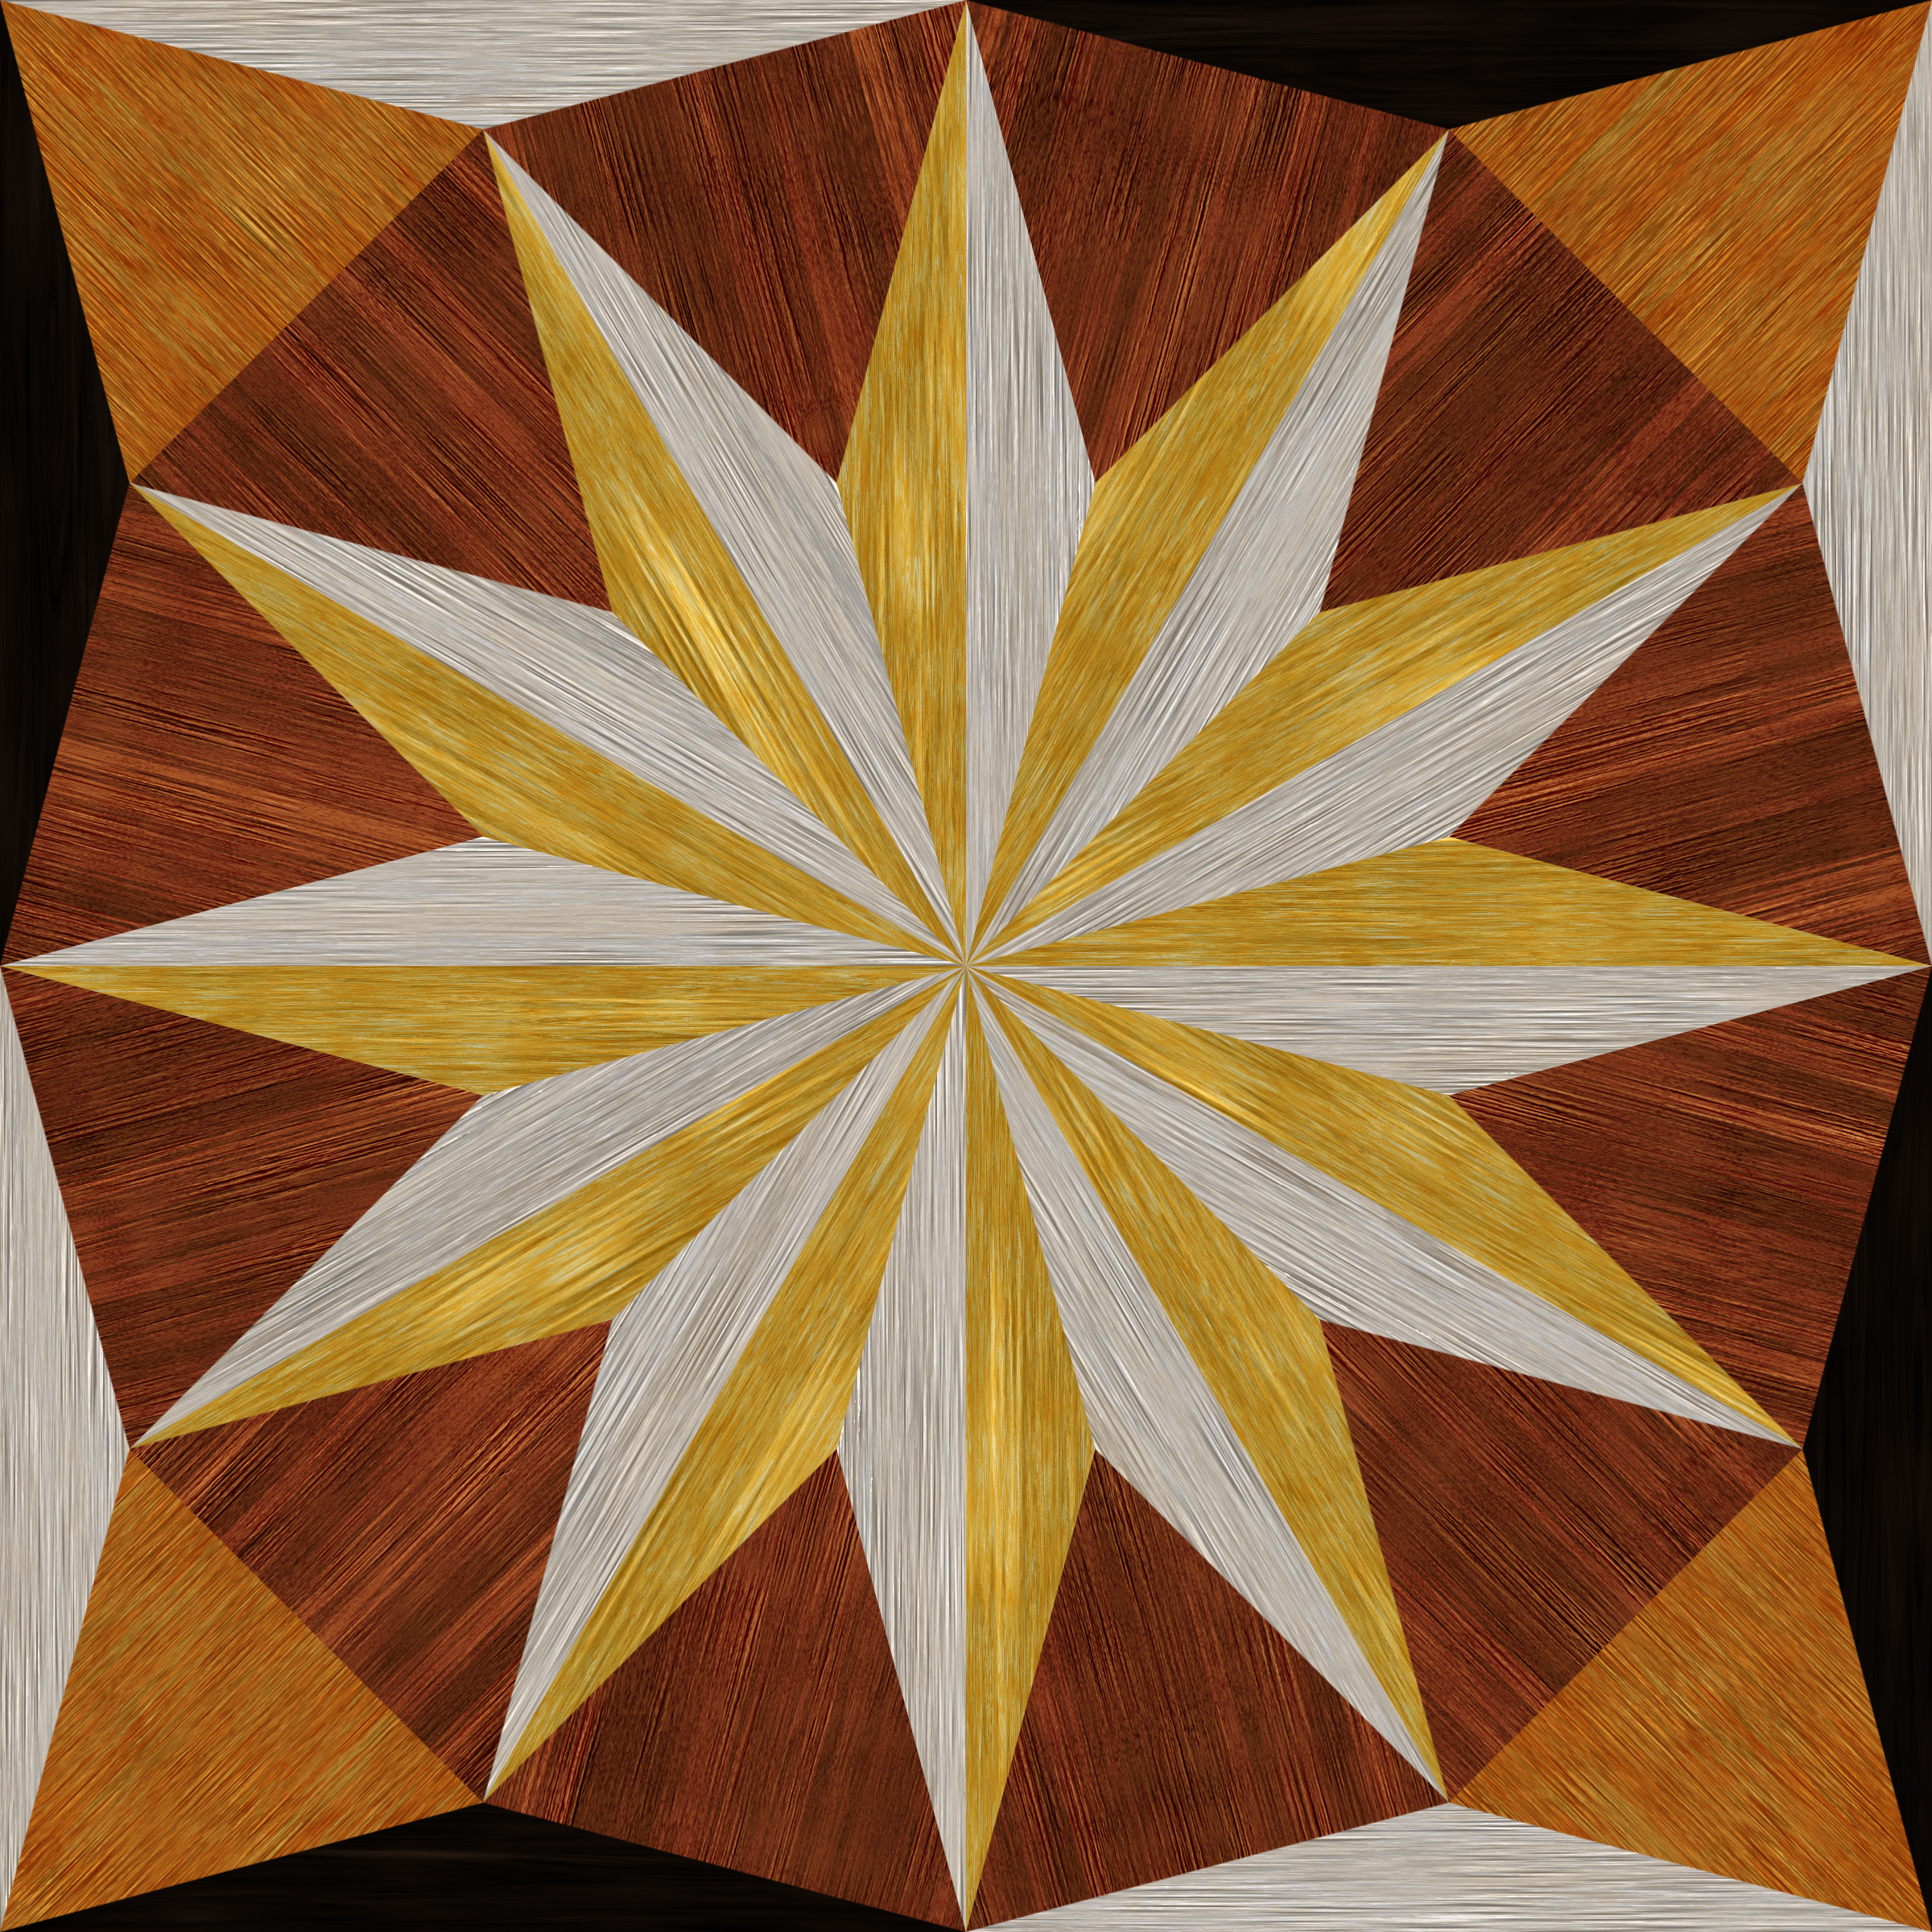 wooden triangle tiling 2 by Lazur URH